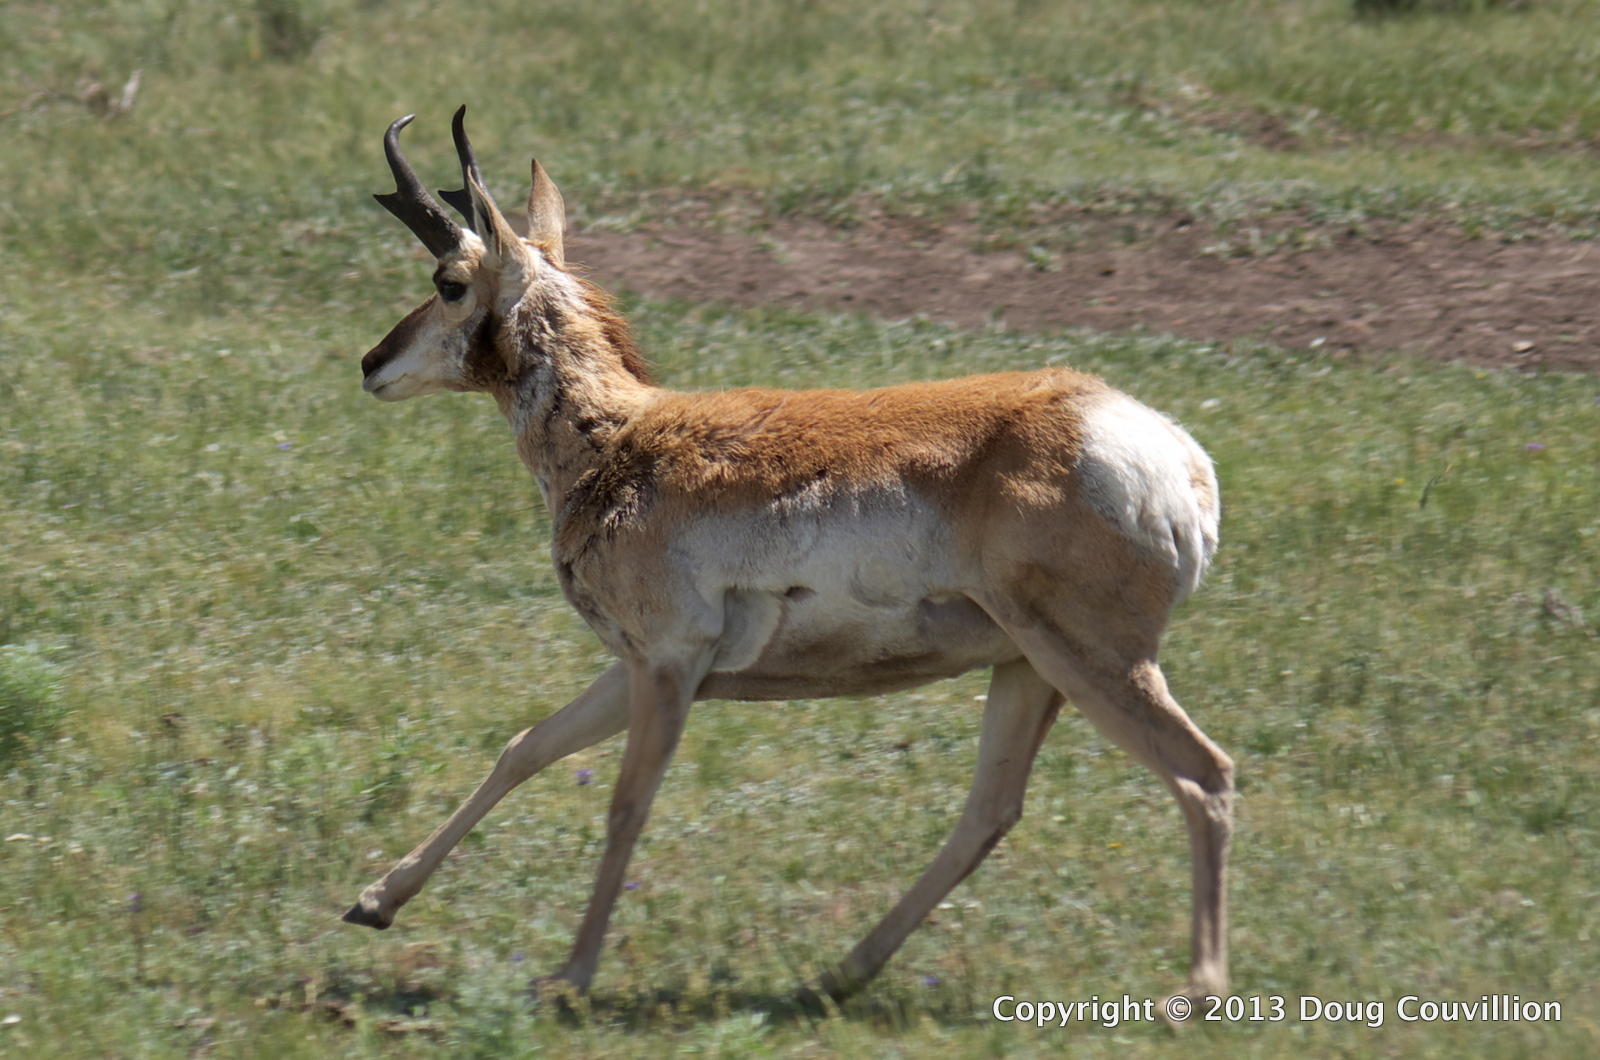 photograph of a pronghorn sheep running